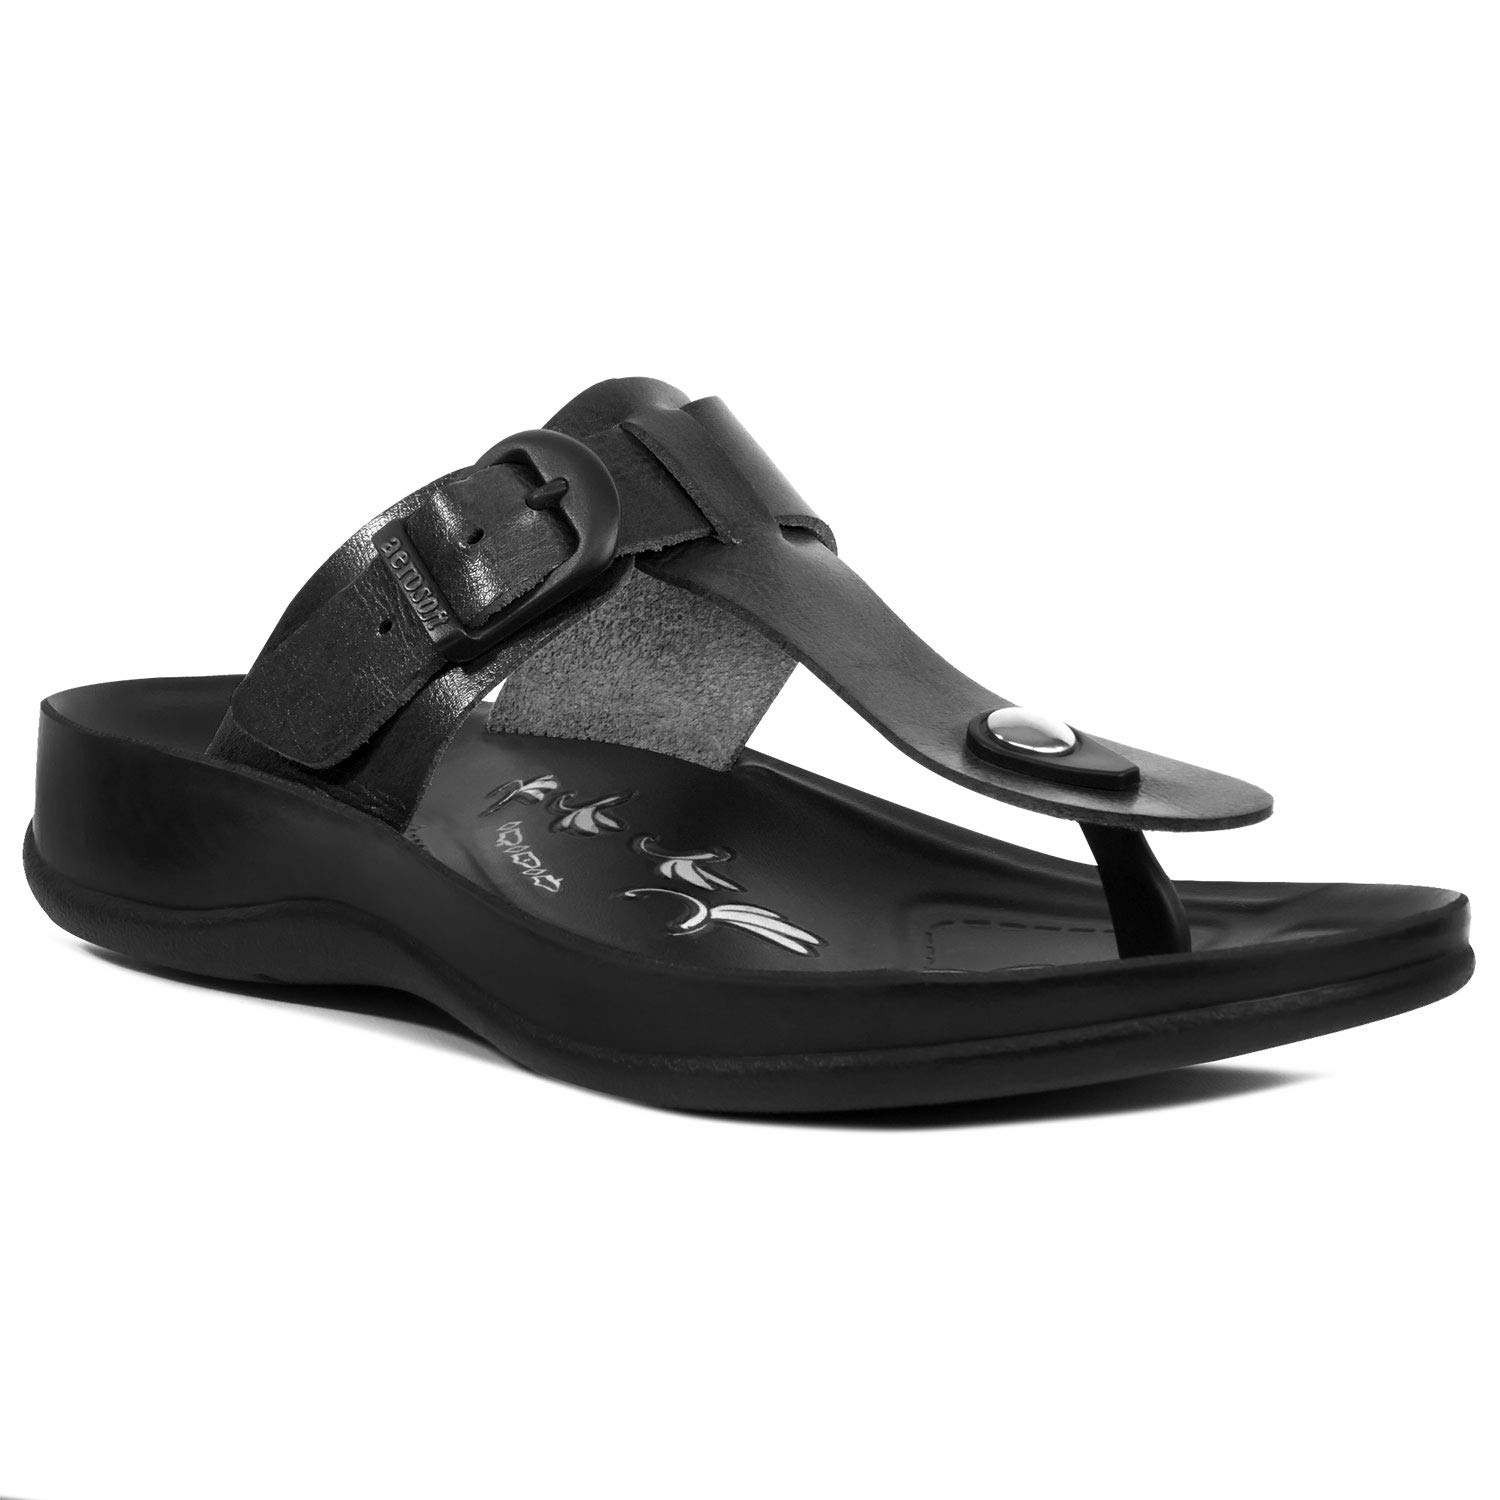 4292e8022 Amazon.com  Aerosoft - Sandals for Women - Arch Supportive  Shoes